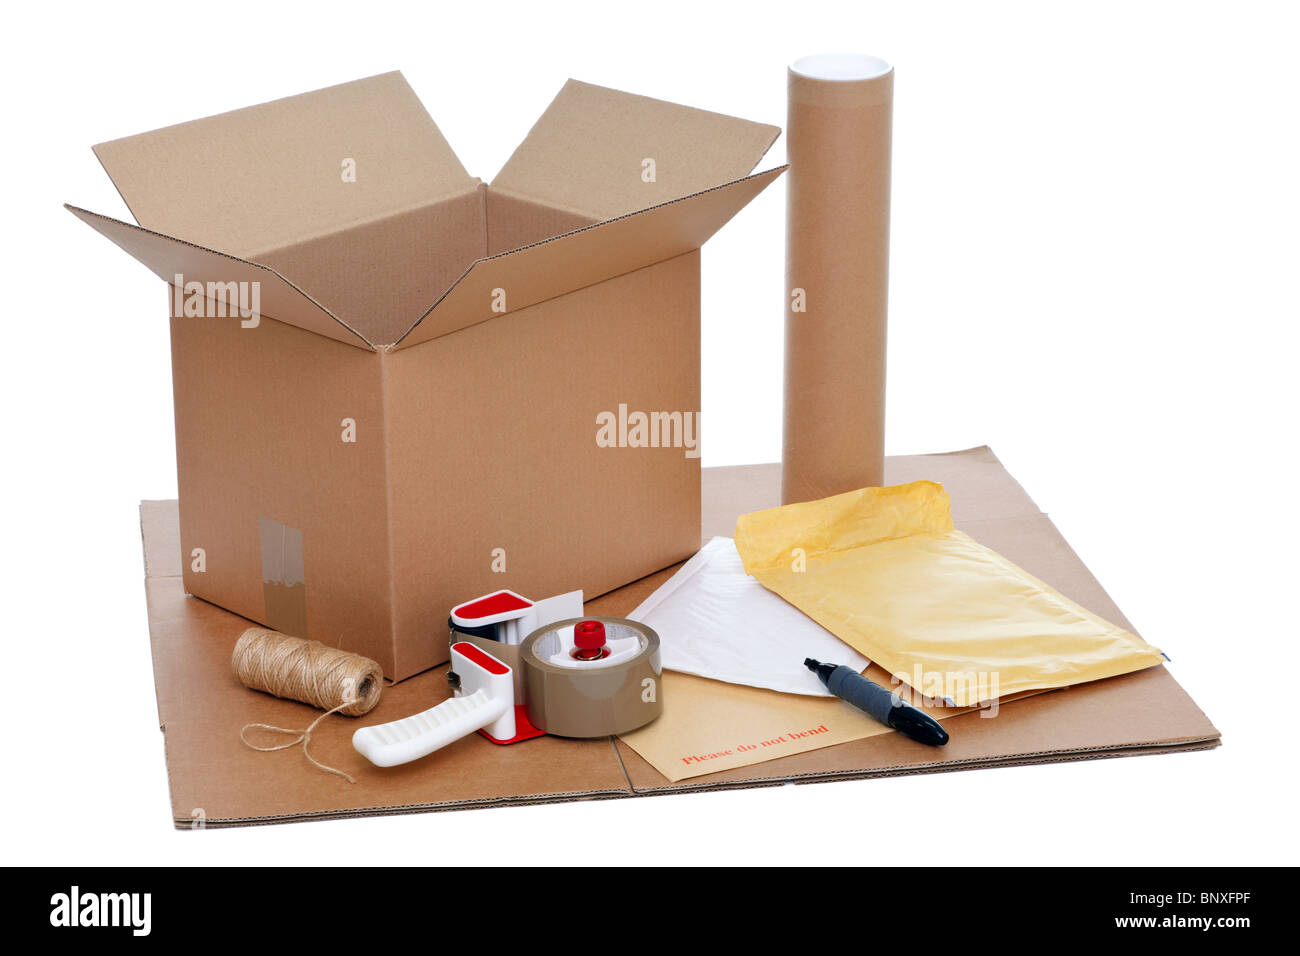 Photo of packaging items isolated on a white background. - Stock Image